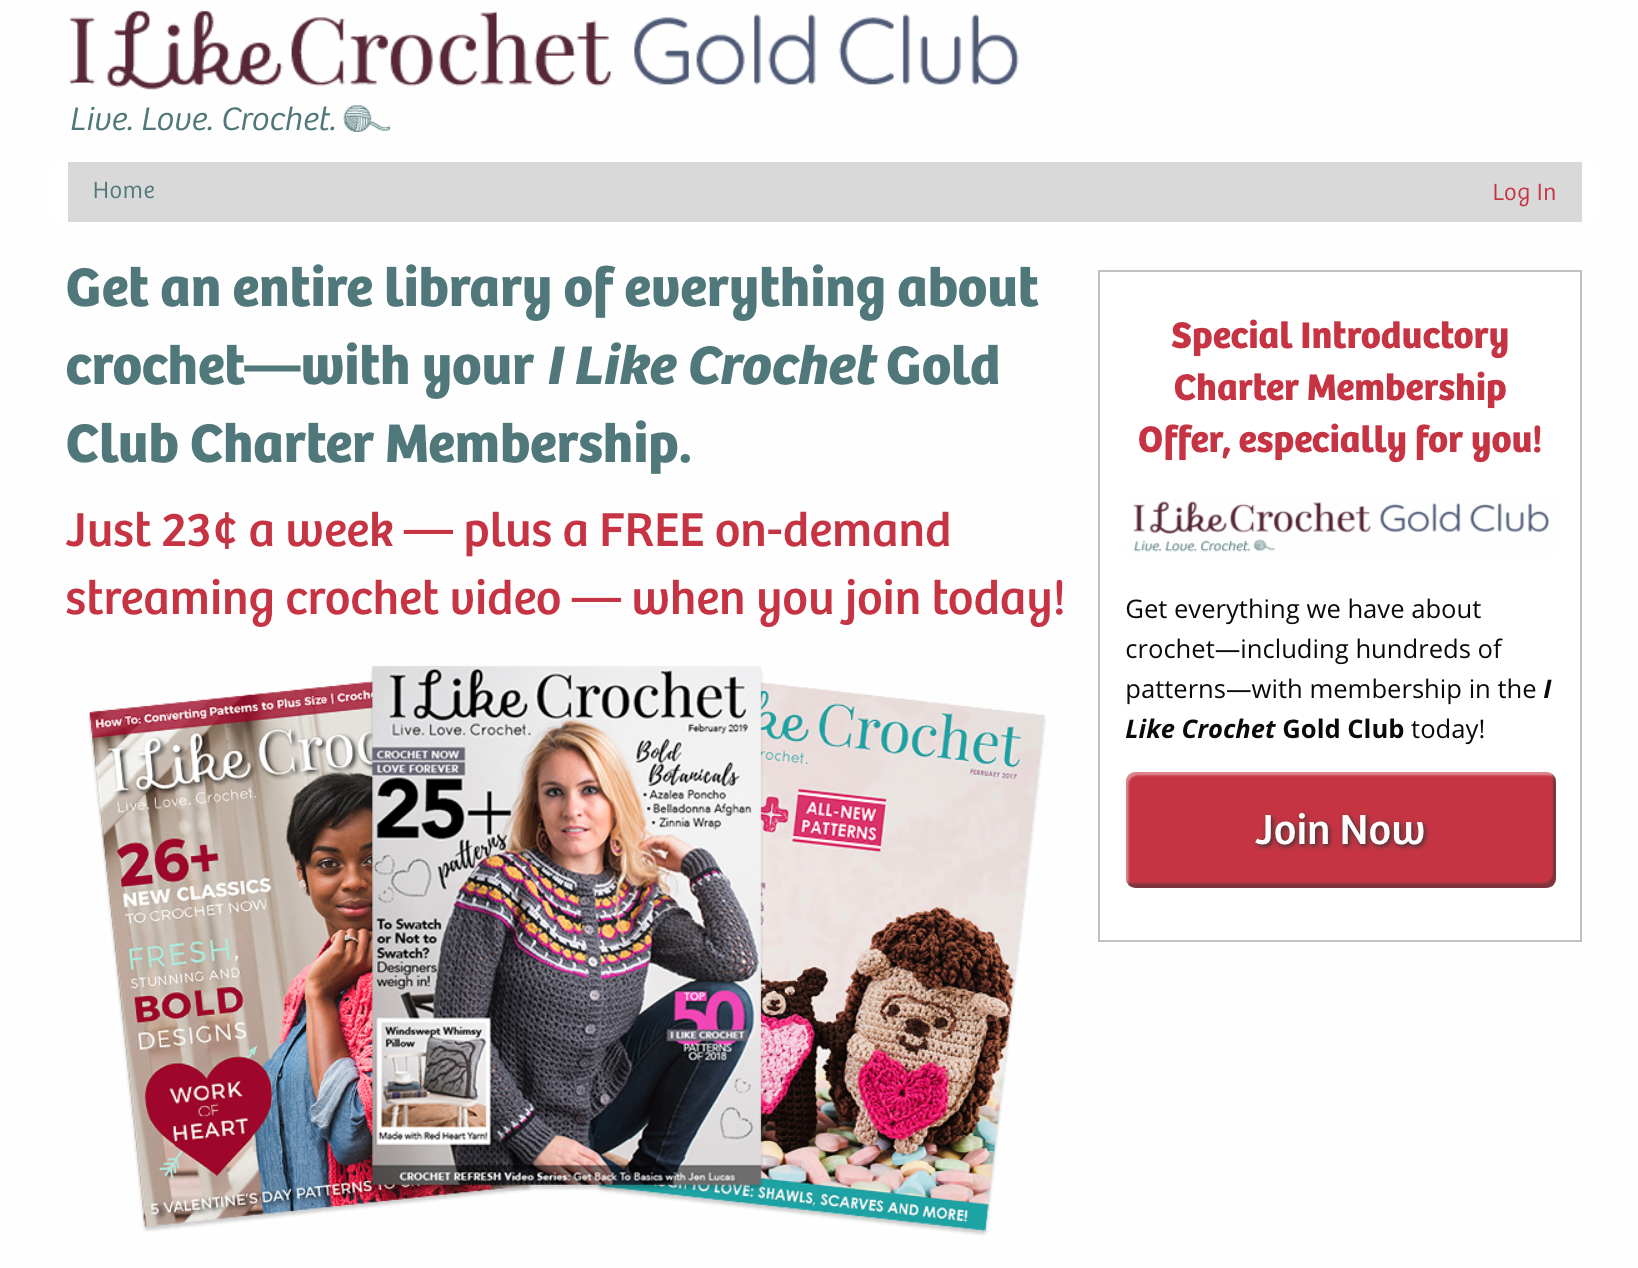 Digital Milestone: I Like Crochet Hits 10,000 Members